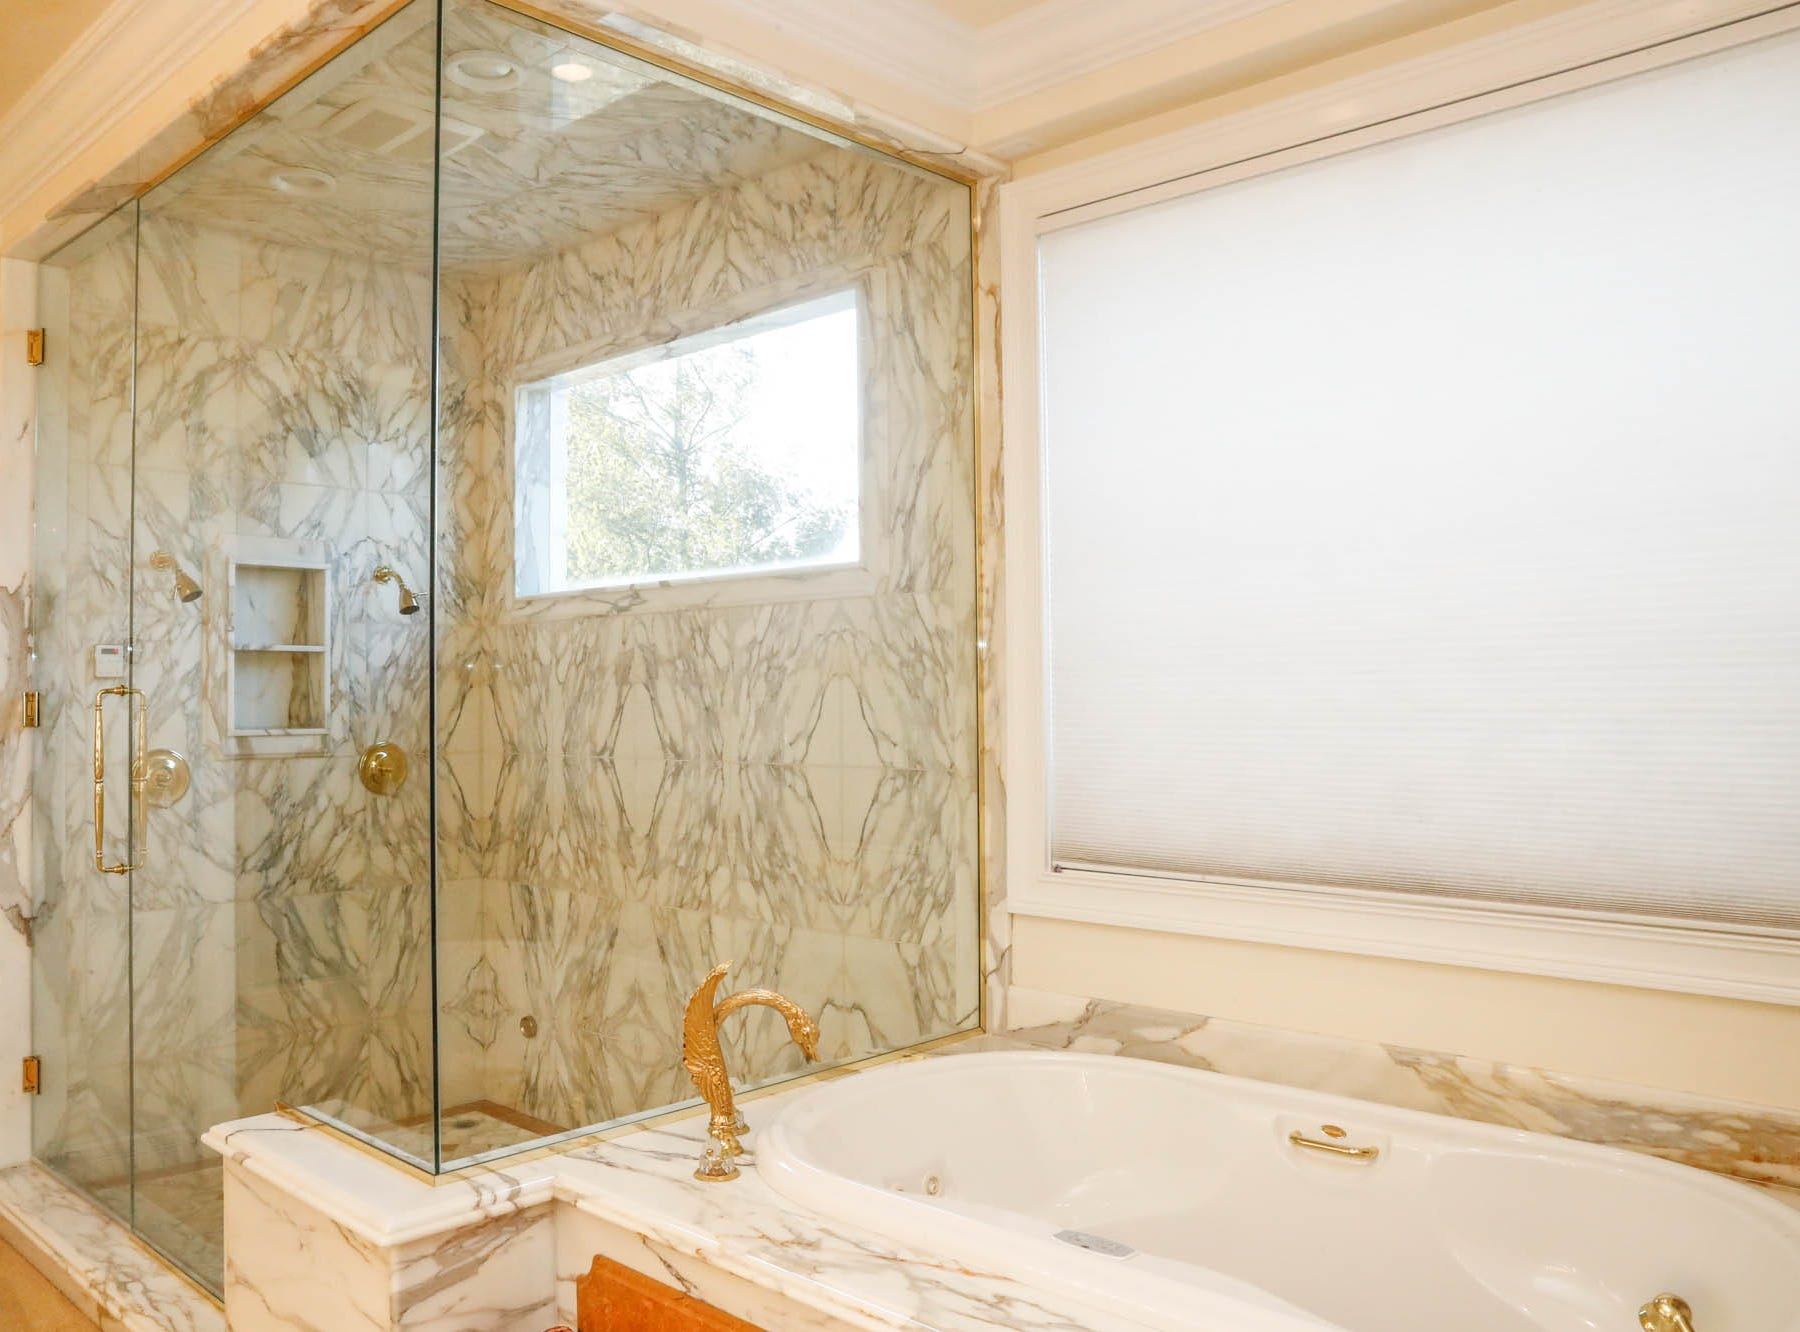 A first-floor master bath, one of two in the home, features gold accents, a whirlpool tub, and all the storage space you could ask for, at a Greenwood home up for sale at 1216 Stone Ridge Court, Greenwood, Ind. on Wednesday, Jan. 30, 2019. The home features 8,234 square feet, four bedrooms, two master suites, a 10 car garage, and an exercise room.